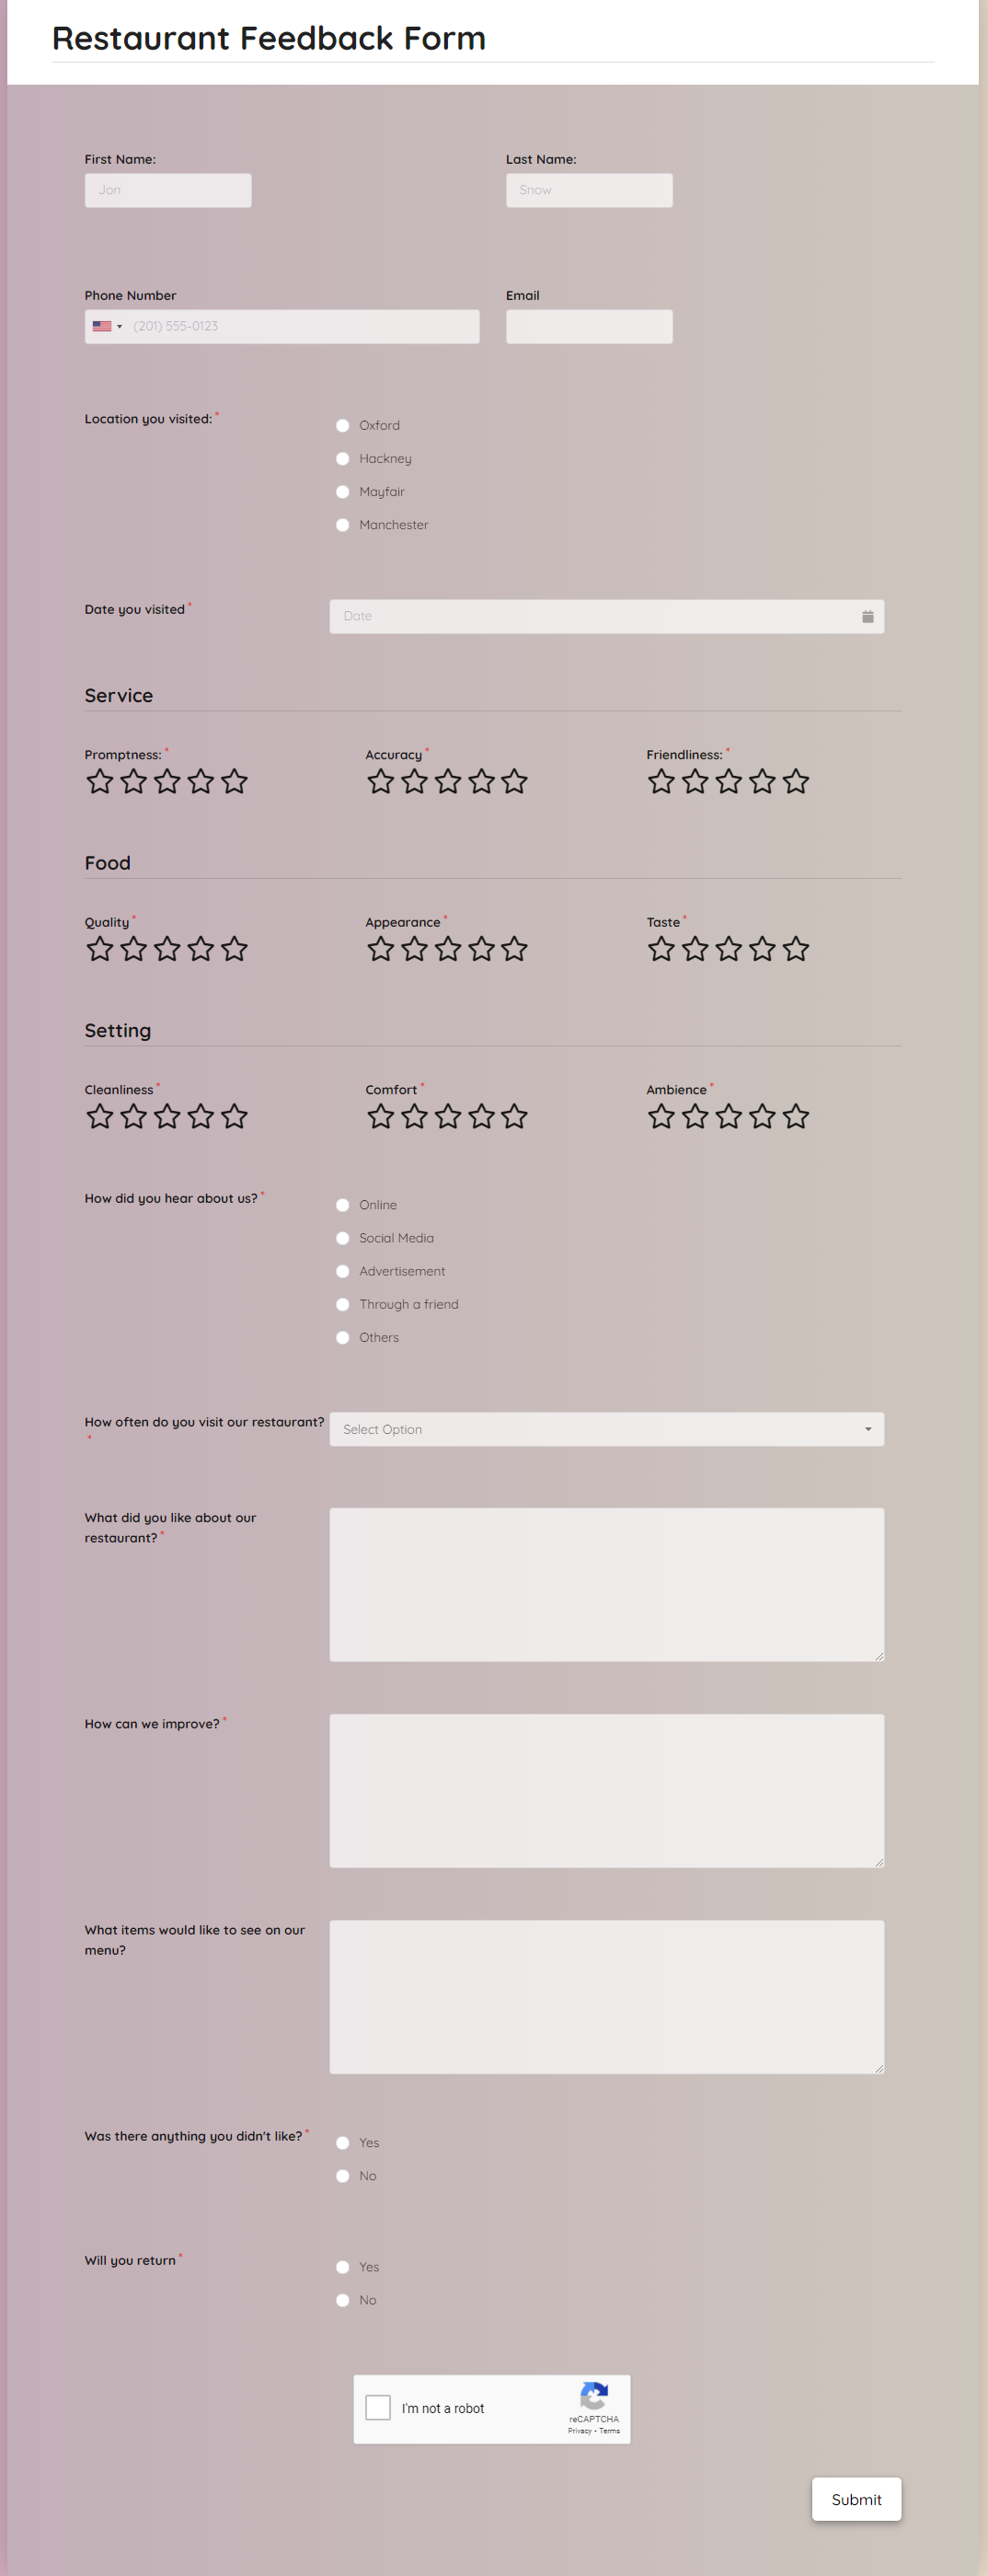 Restaurant Feedback Form Template template